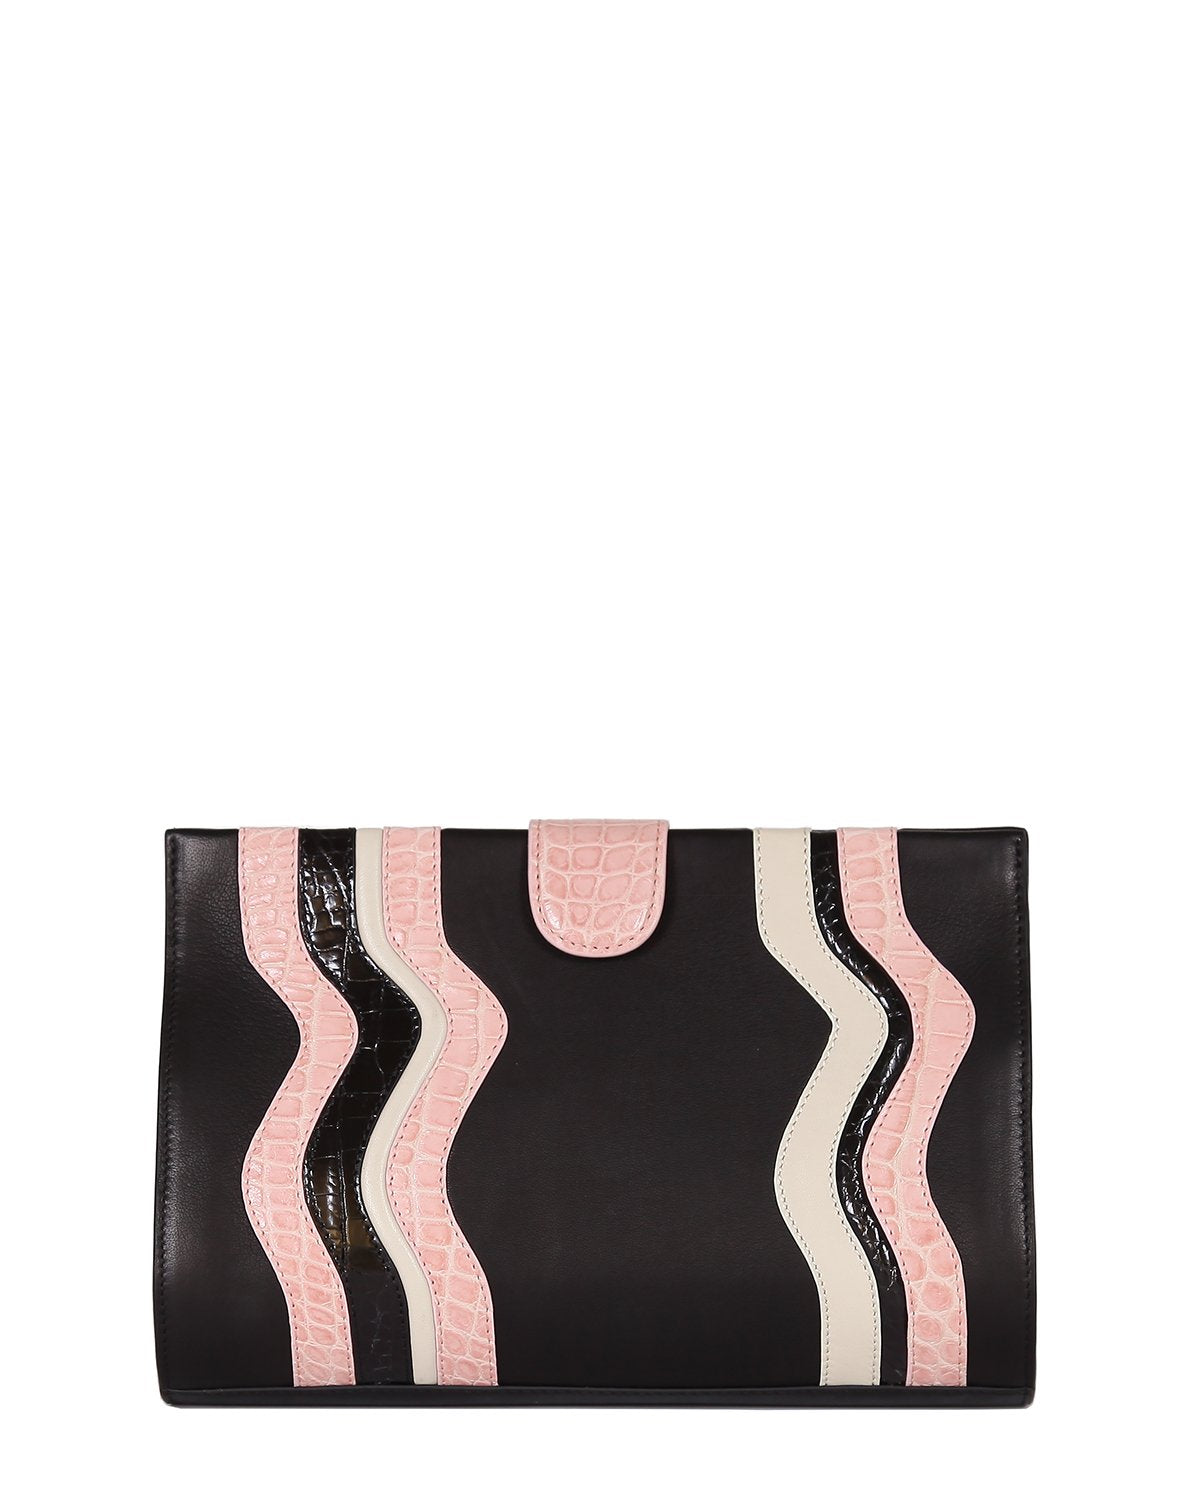 Black Lambskin Clutch with Genuine American Alligator pink and black wavy trims front view